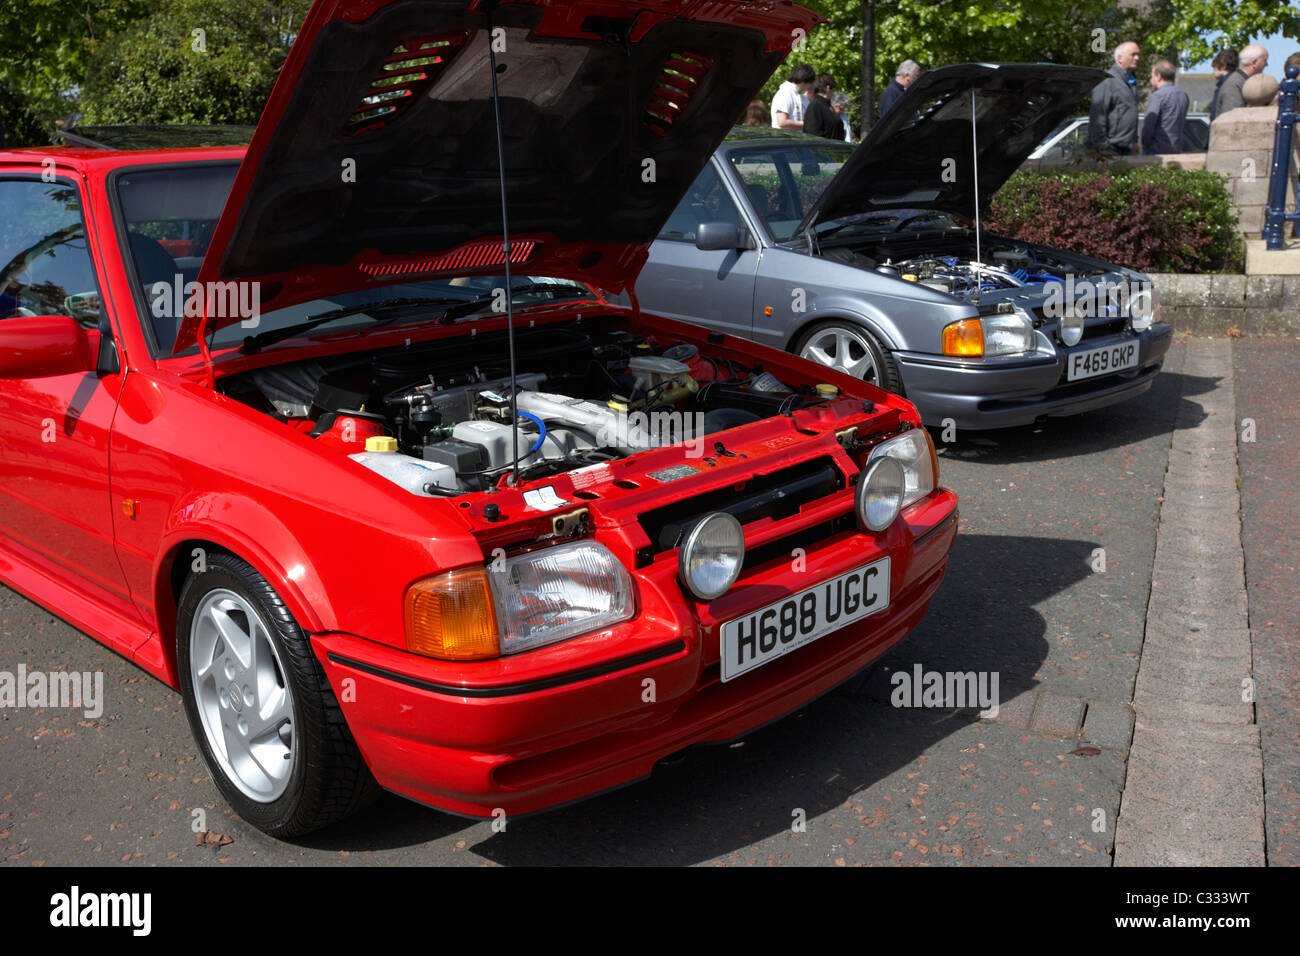 Stock Photo - two spotless clean ford escort xr3i show cars at a modified car show in the uk & two spotless clean ford escort xr3i show cars at a modified car ... markmcfarlin.com